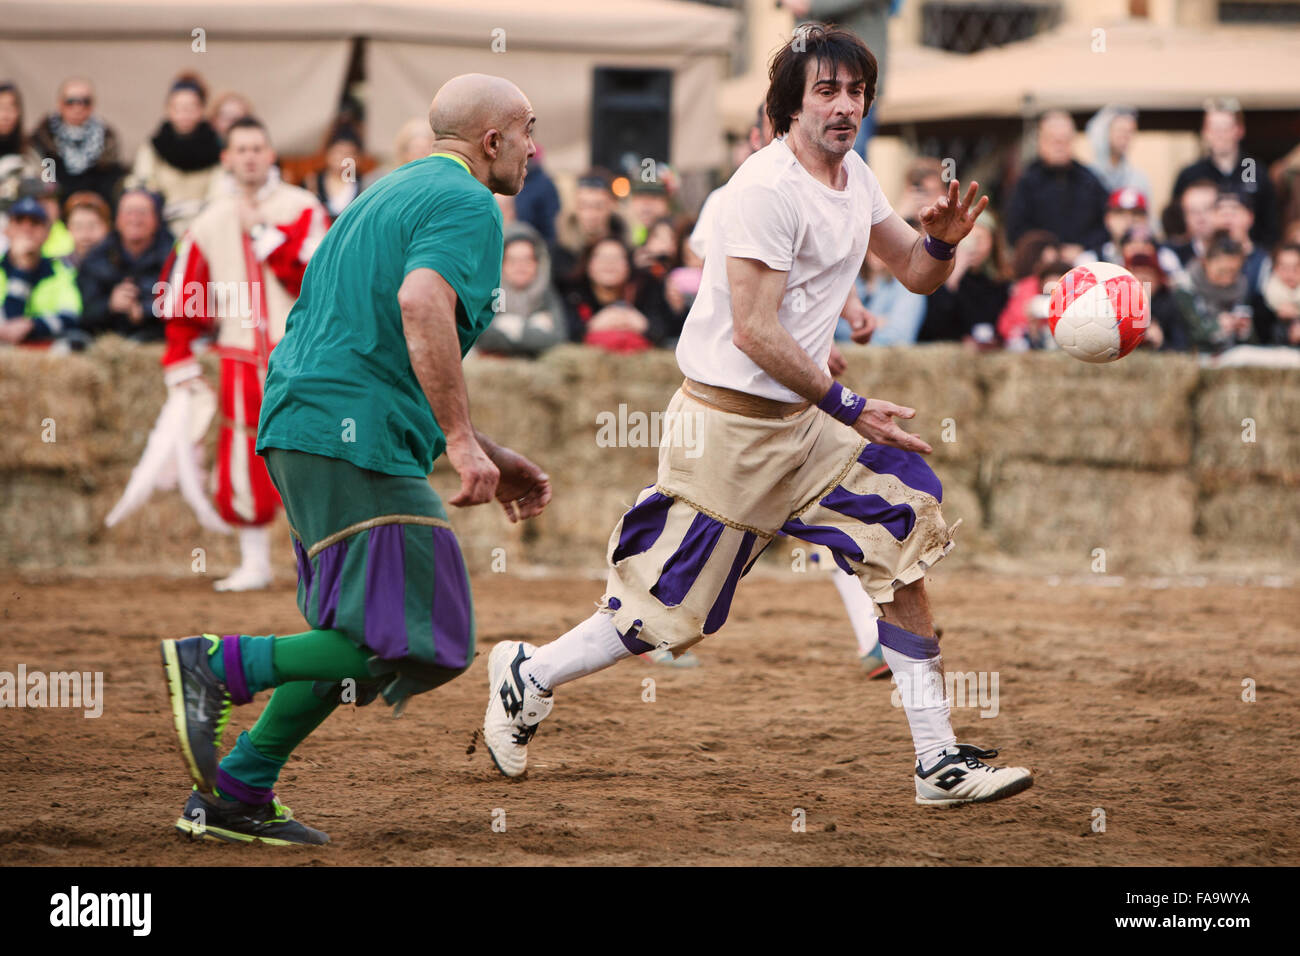 Calcio Storico Fiorentino (Historic Florentine Football )match between Whites (Bianchi) and Greens (Verdi) - Stock Image